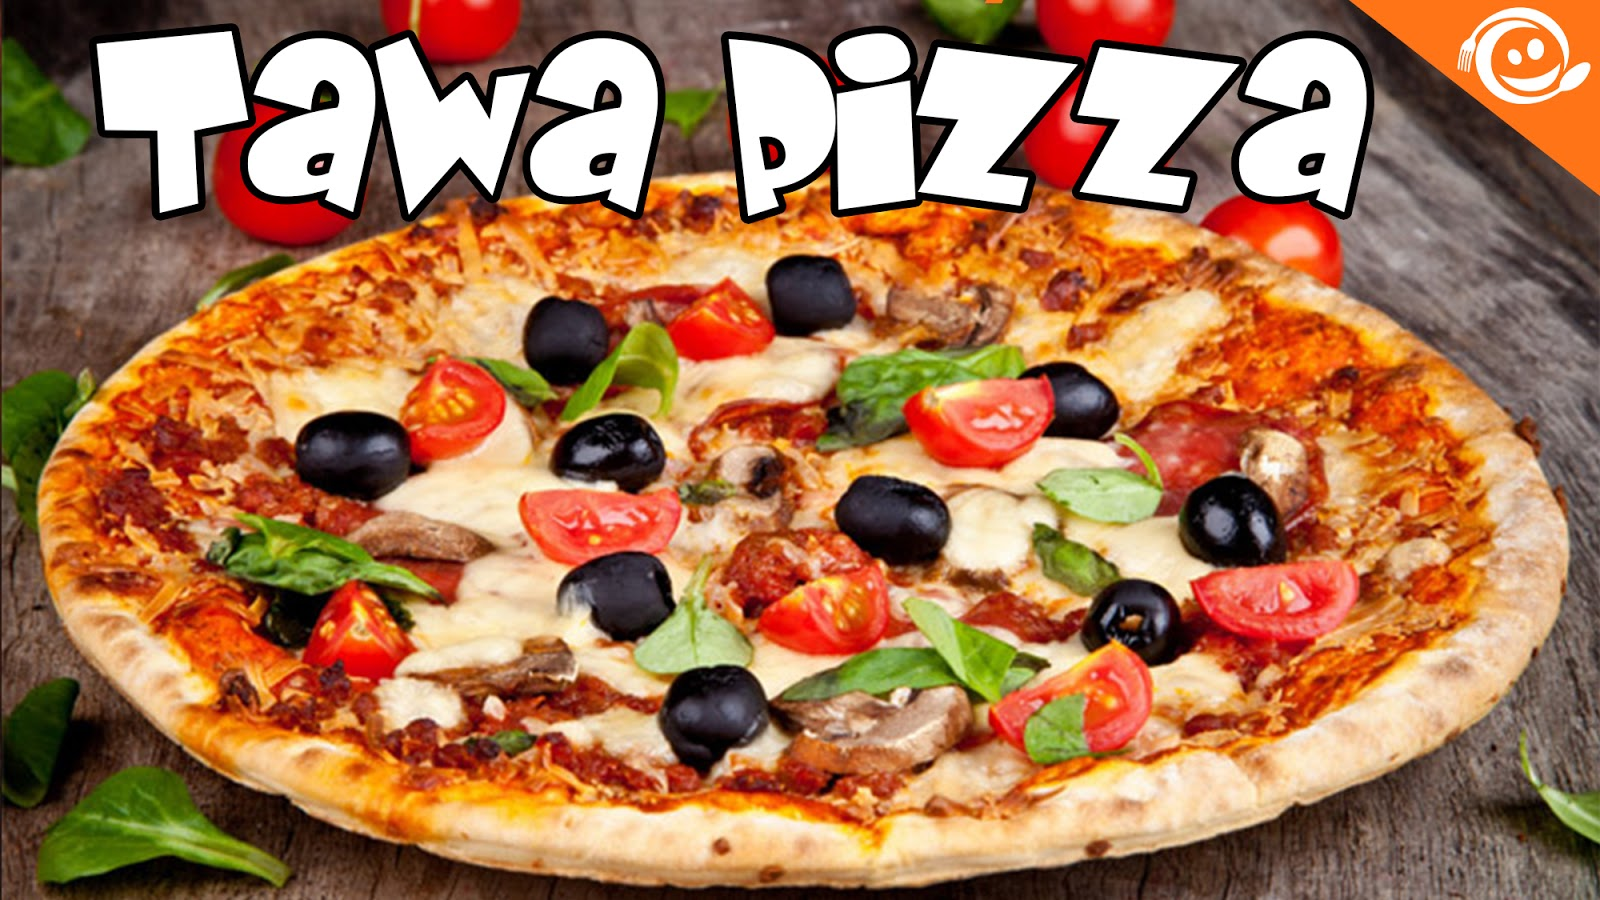 Tawa pizza recipe in hindi simple pizza foodfunia pakistan tawa pizza recipe in hindi simple pizza forumfinder Image collections